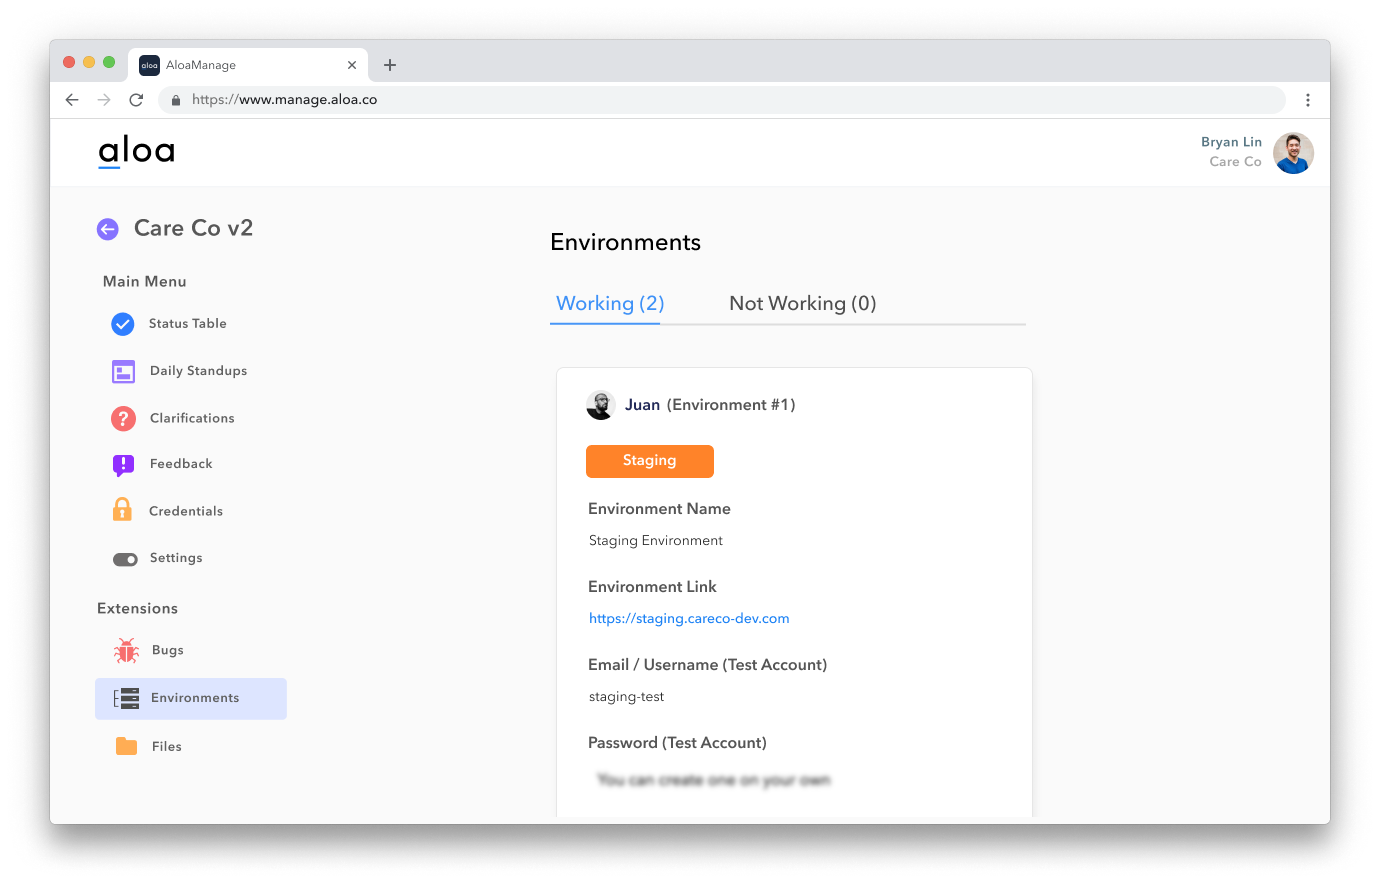 Keep track of all your environments and servers in one place.